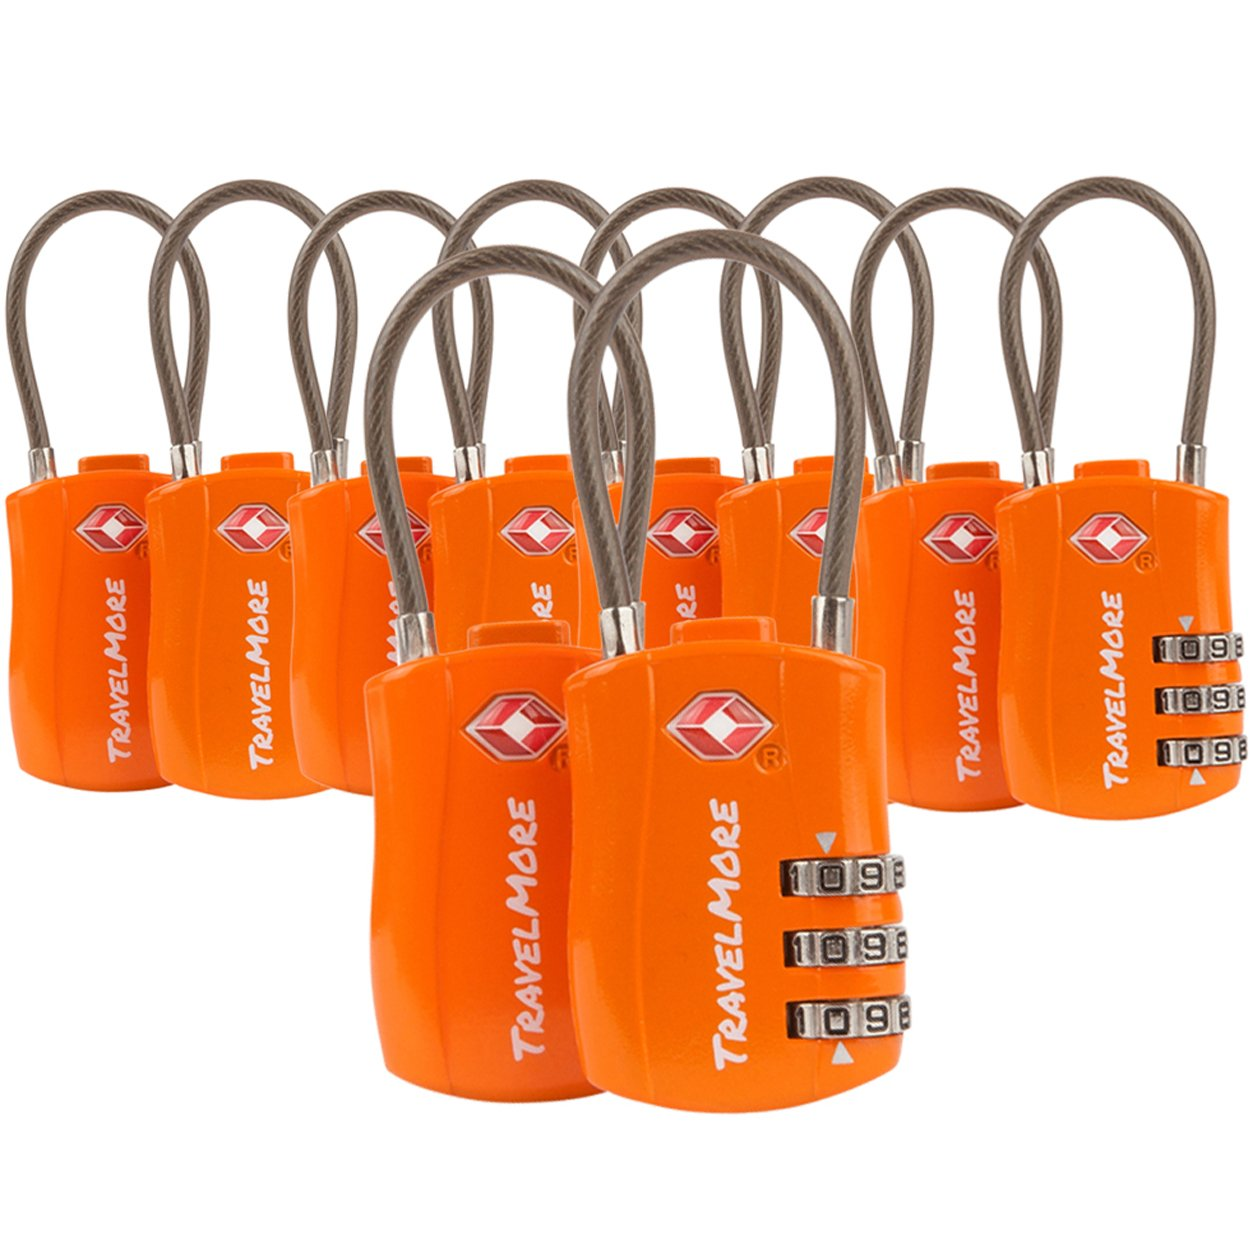 TravelMore 10 Pack TSA Approved Travel Combination Cable Luggage Locks for Suitcases - Orange by TravelMore